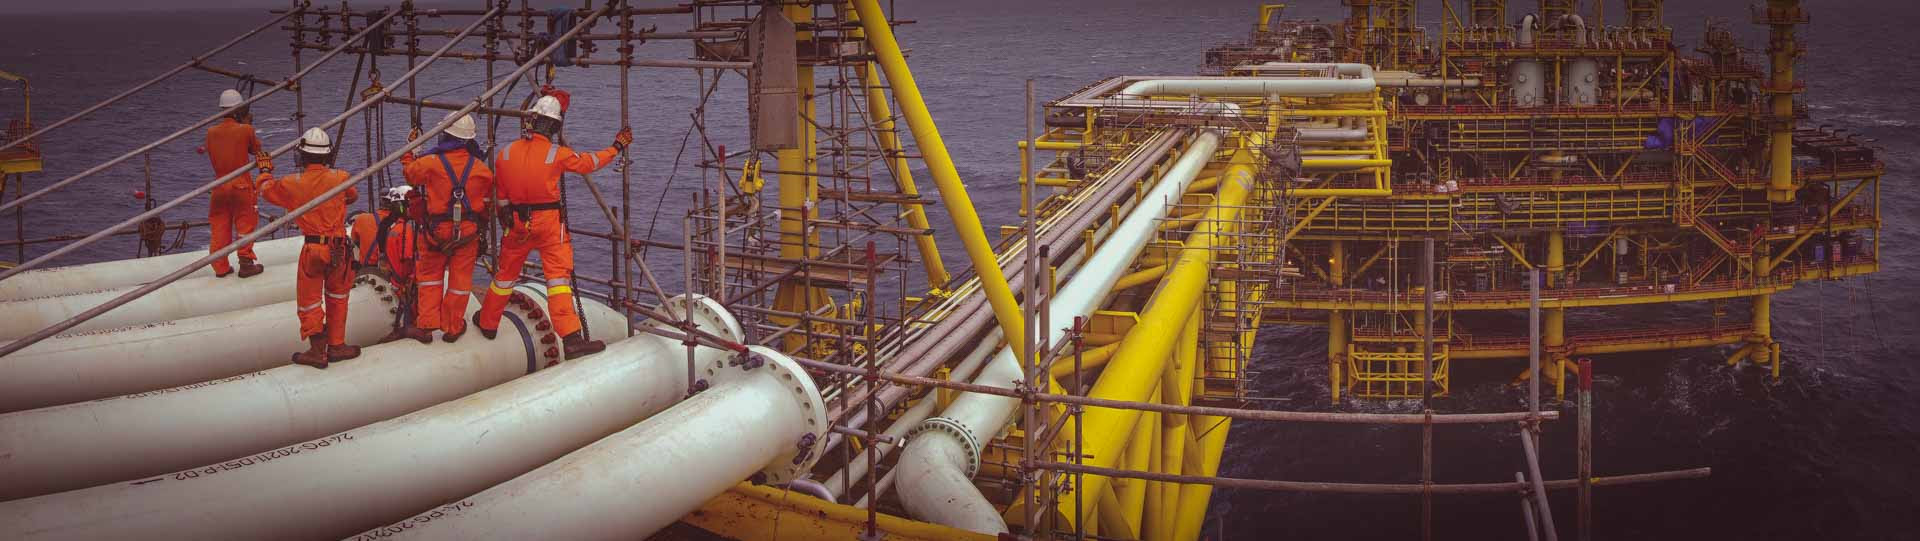 Fundamentals Of Offshore Pipeline Engineering Online Training Course Glomacs Online